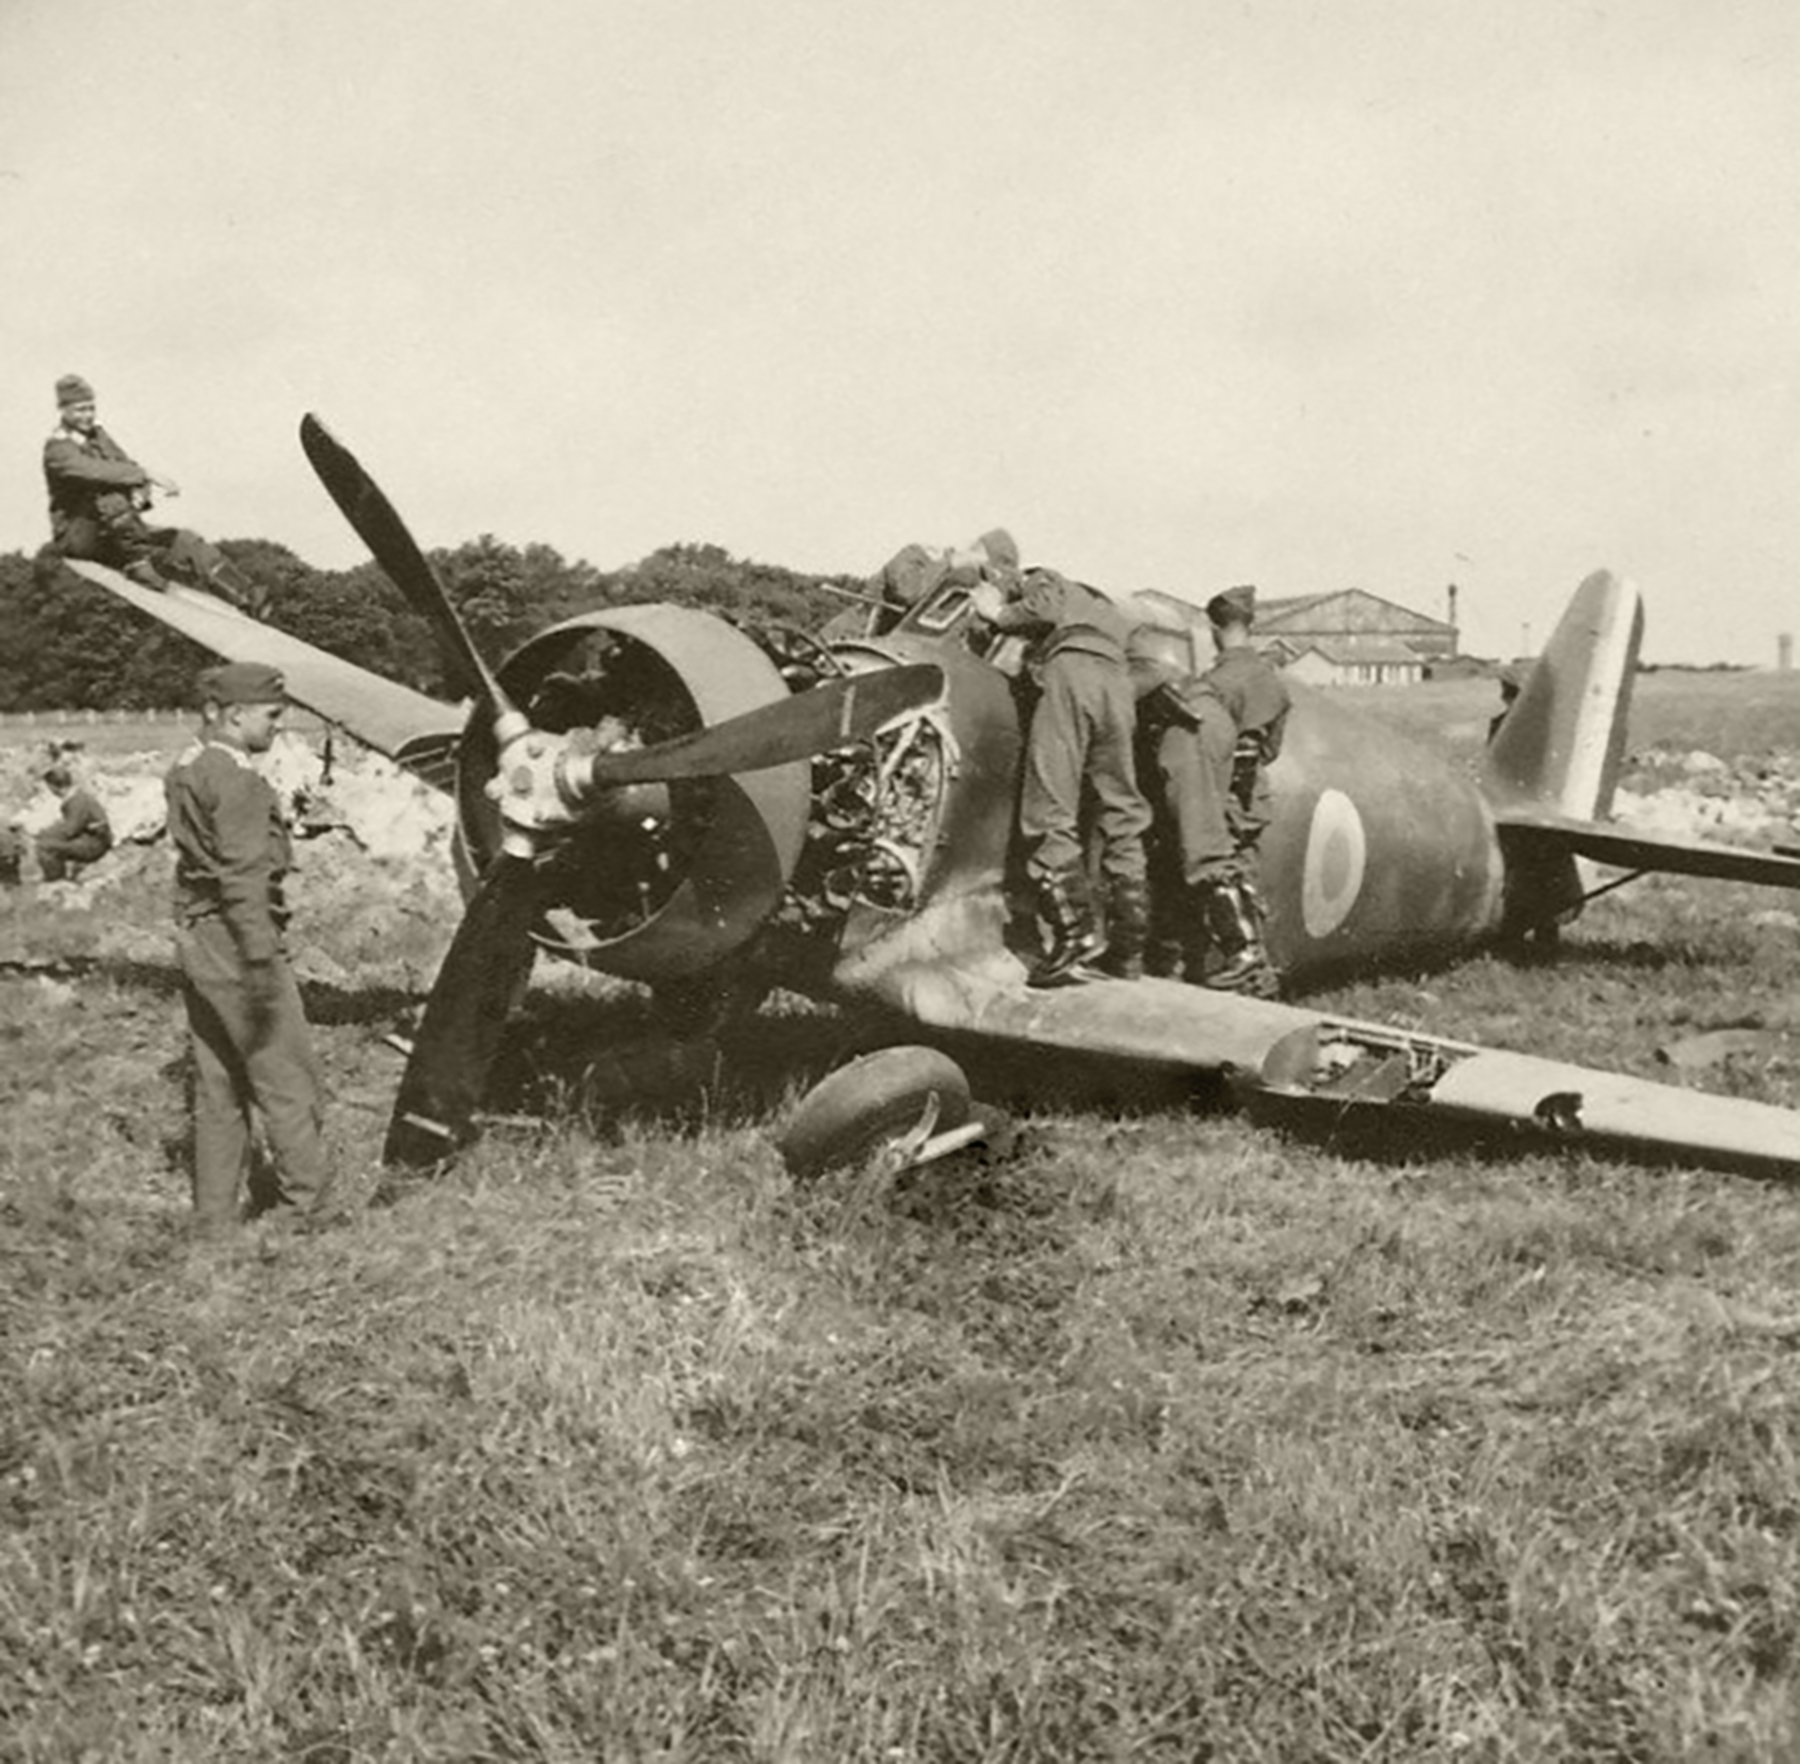 French Airforce Bloch MB 152C1 ground looped during the battle of France May Jun 1940 ebay 01